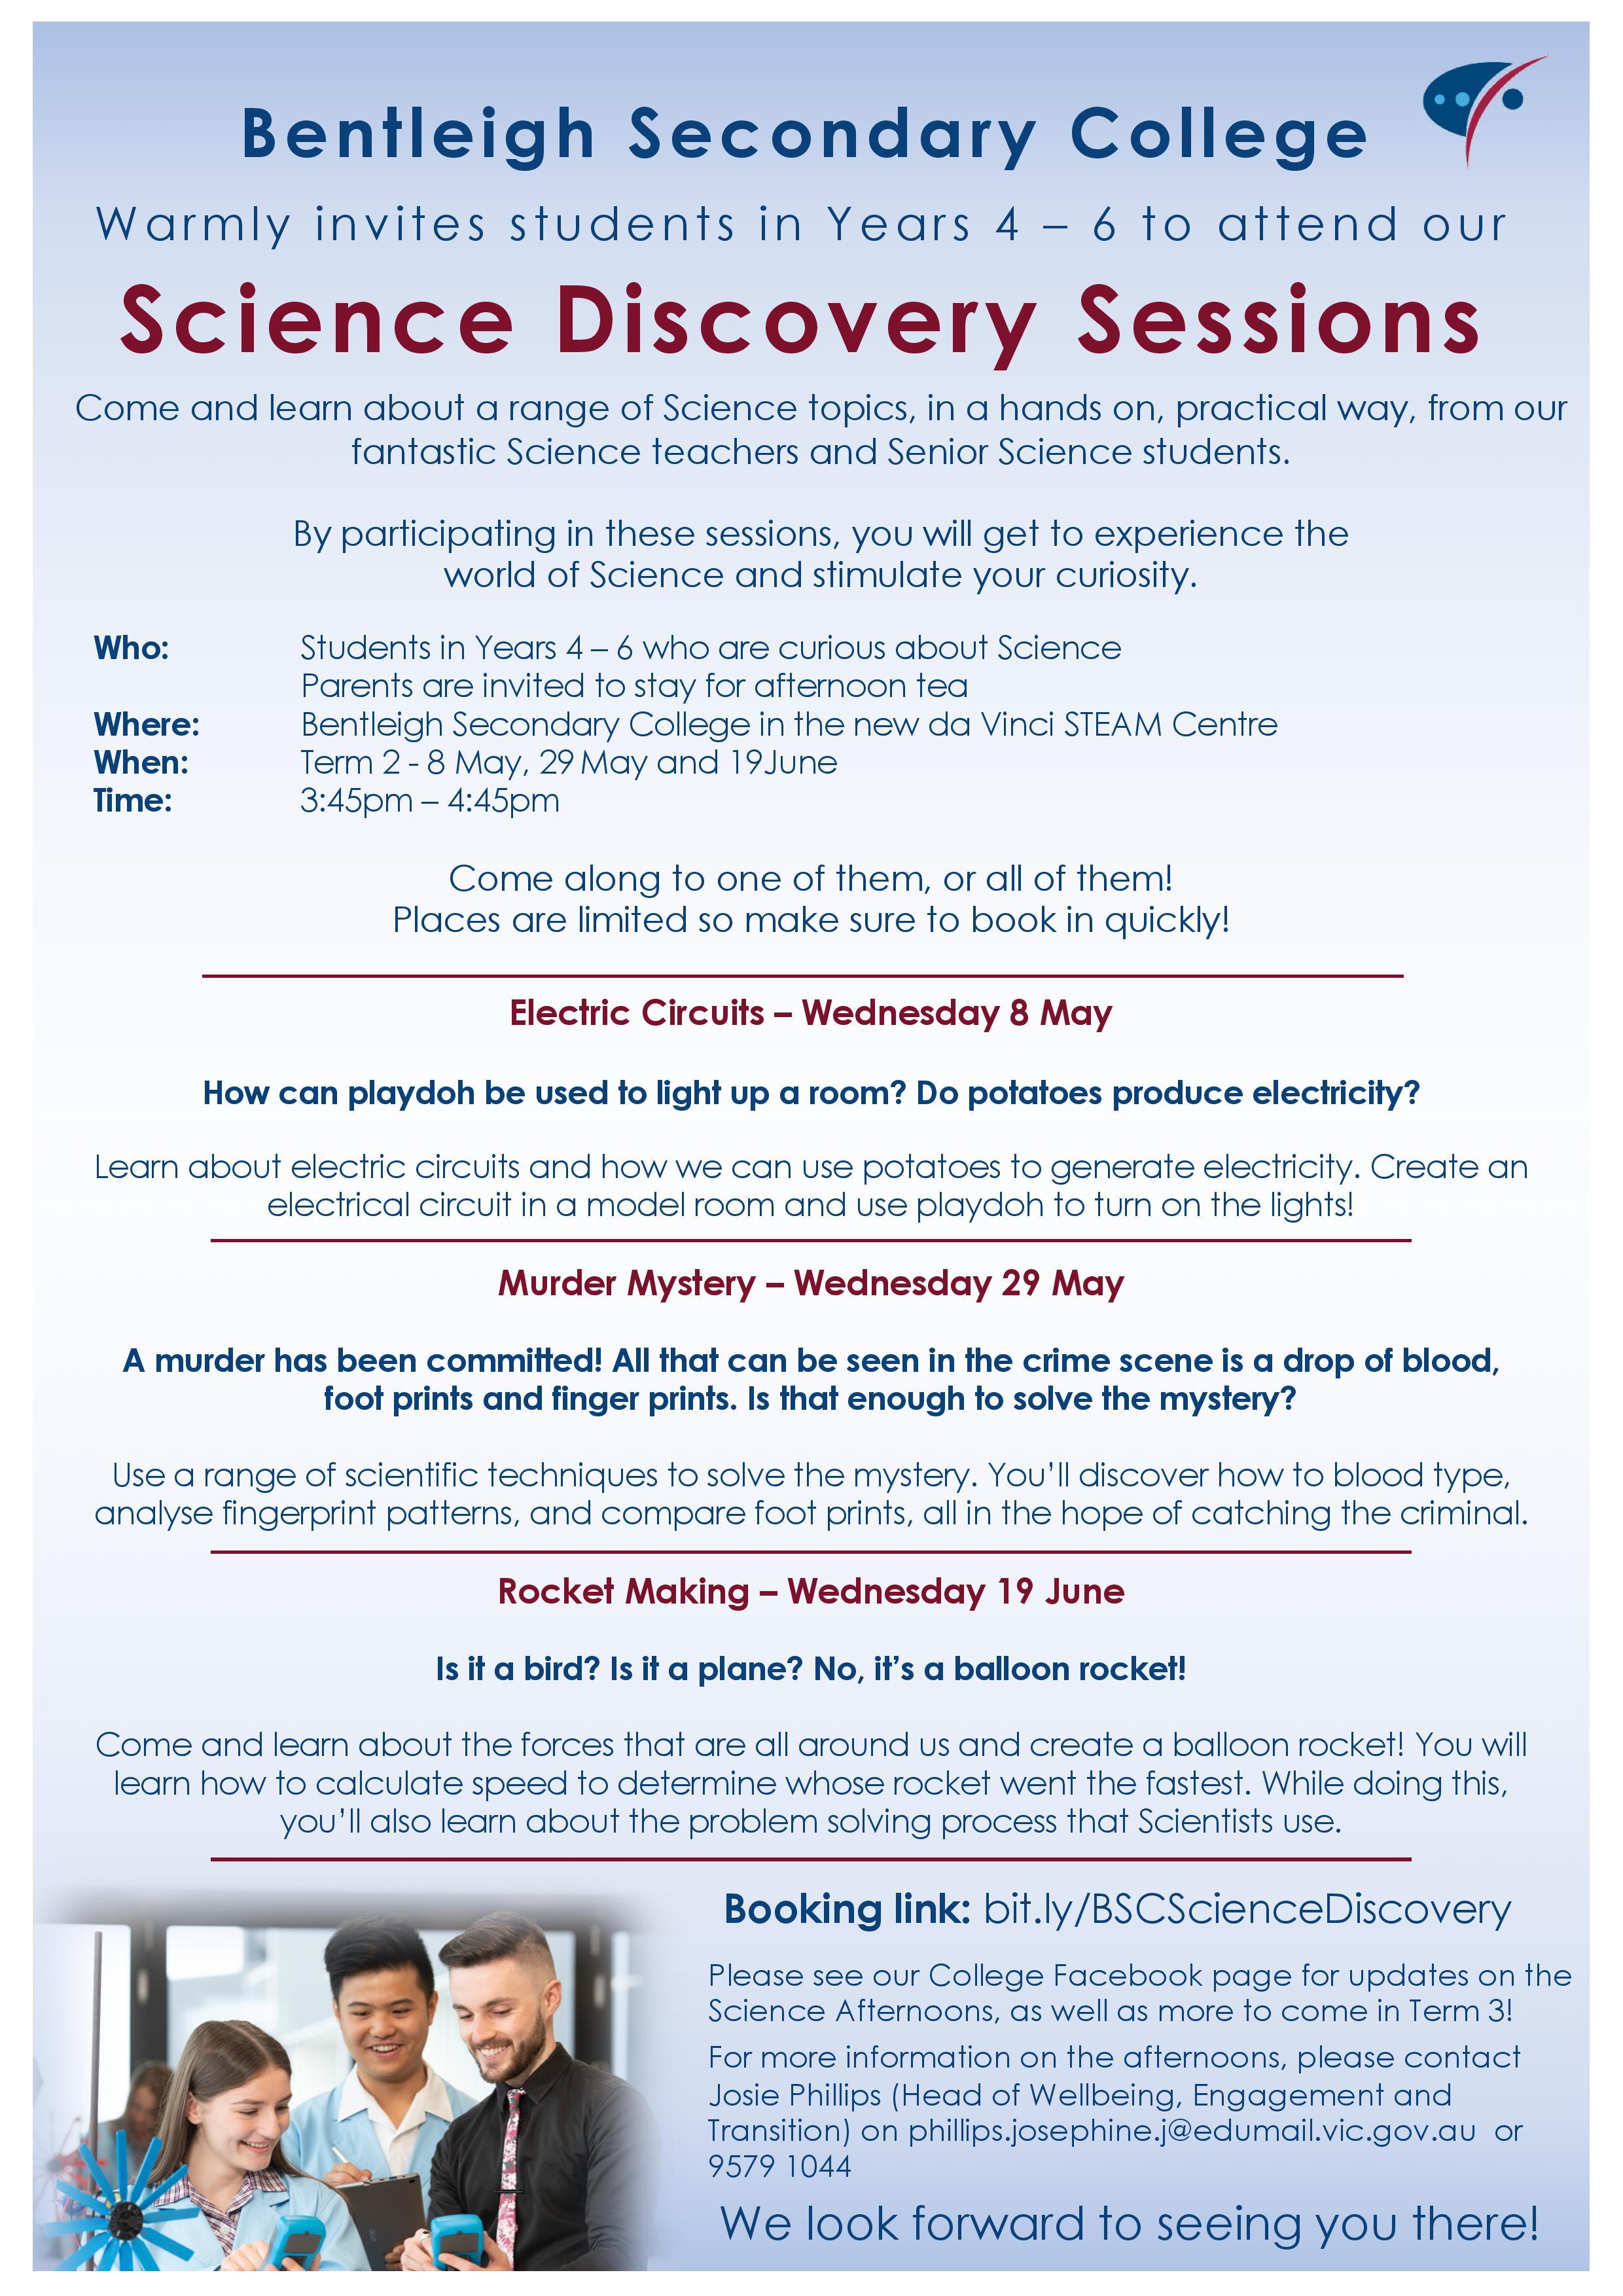 https://www.bentleighsc.vic.edu.au/uploaded_files/media/1554161380science_discovery_sessions_flyer_.jpg